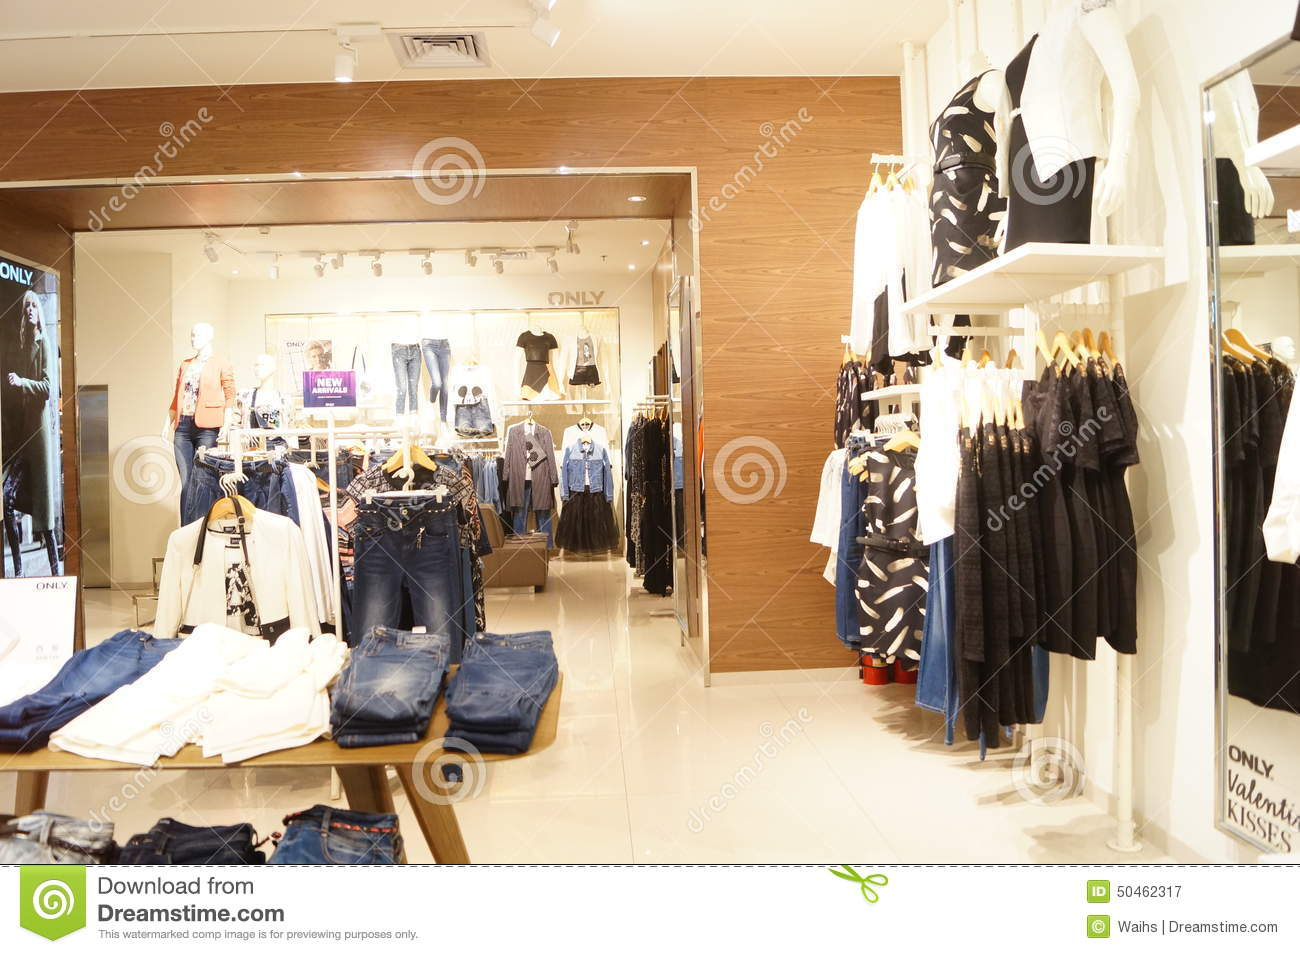 Girls clothing stores Simply fashion clothing store